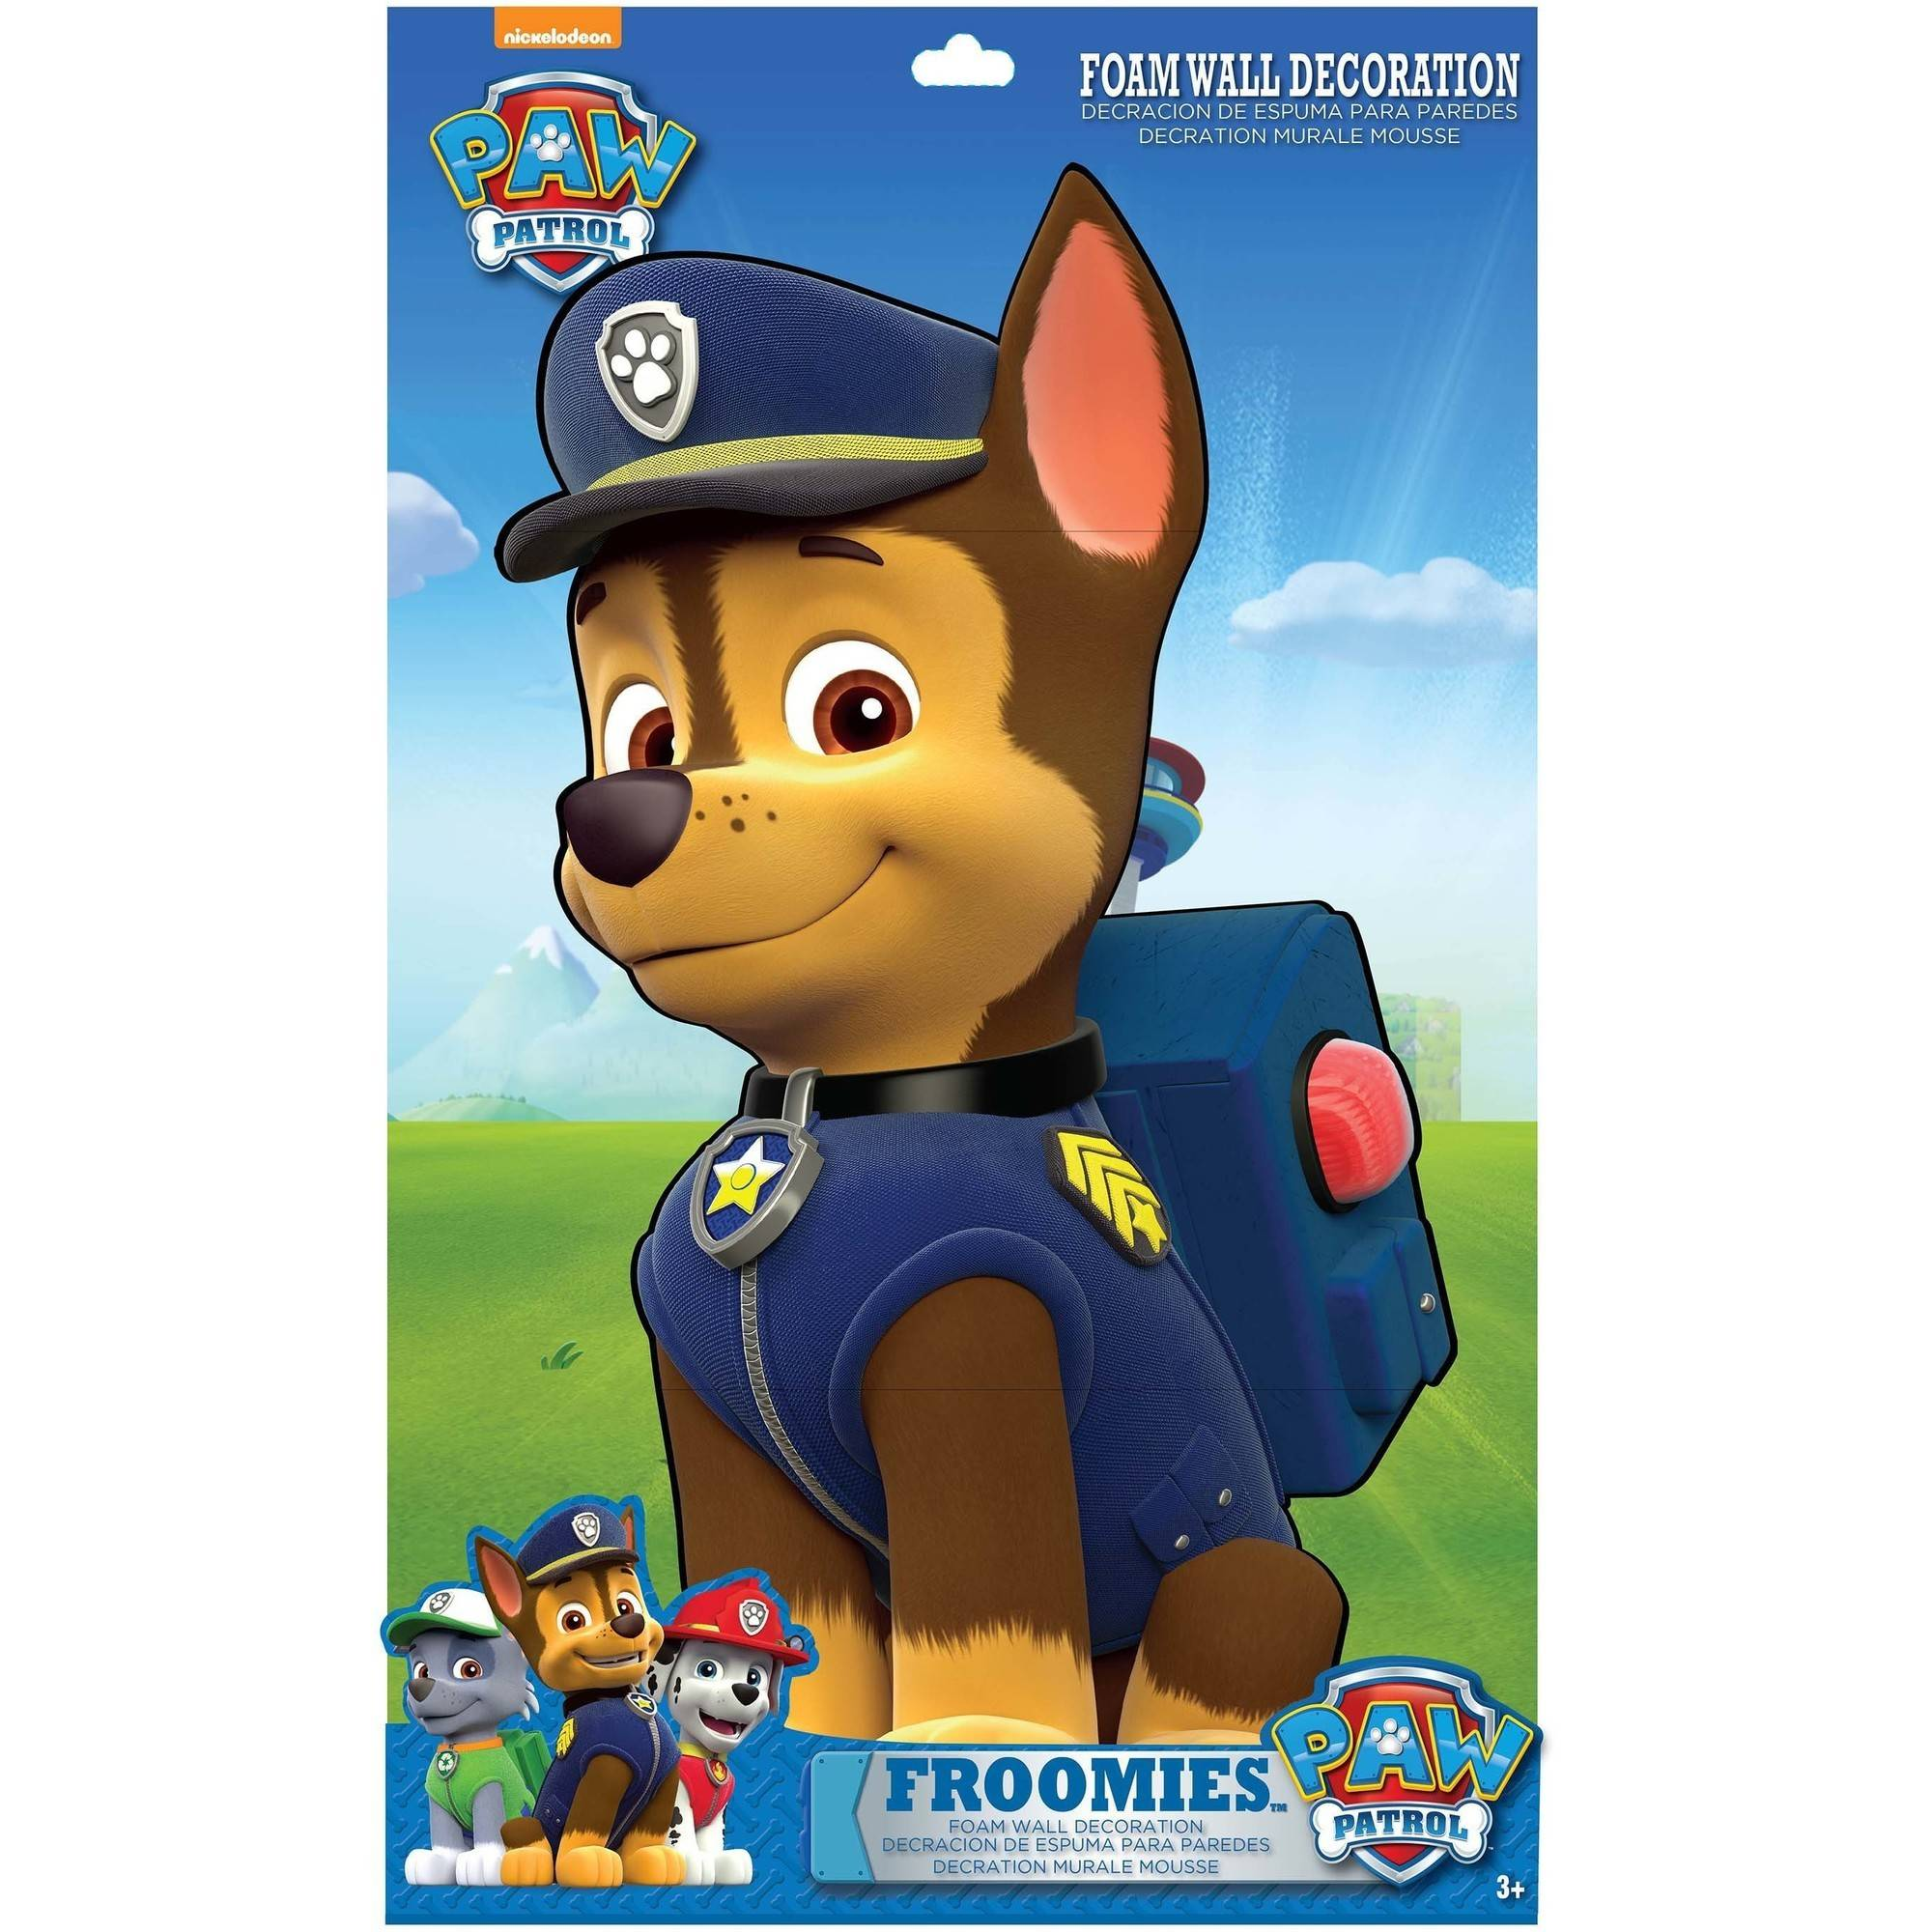 Paw Patrol Chase Froomies Foam Wall Decor